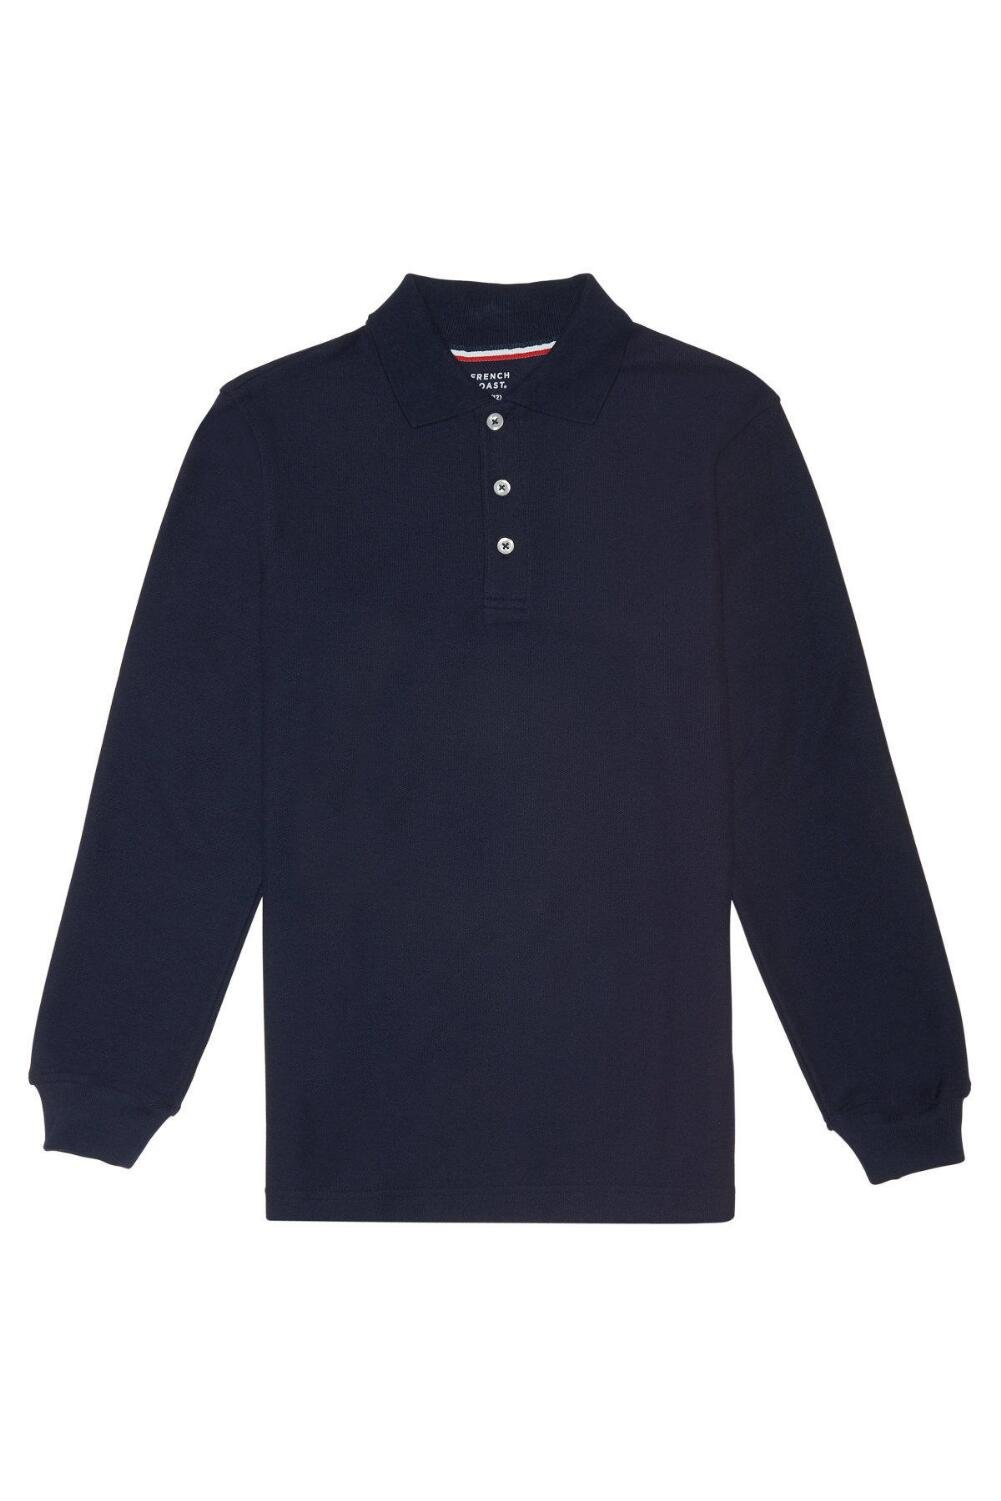 French Toast Boys' Long-Sleeve Pique Polo Shirt, Navy, X-Large/18-20 Husky